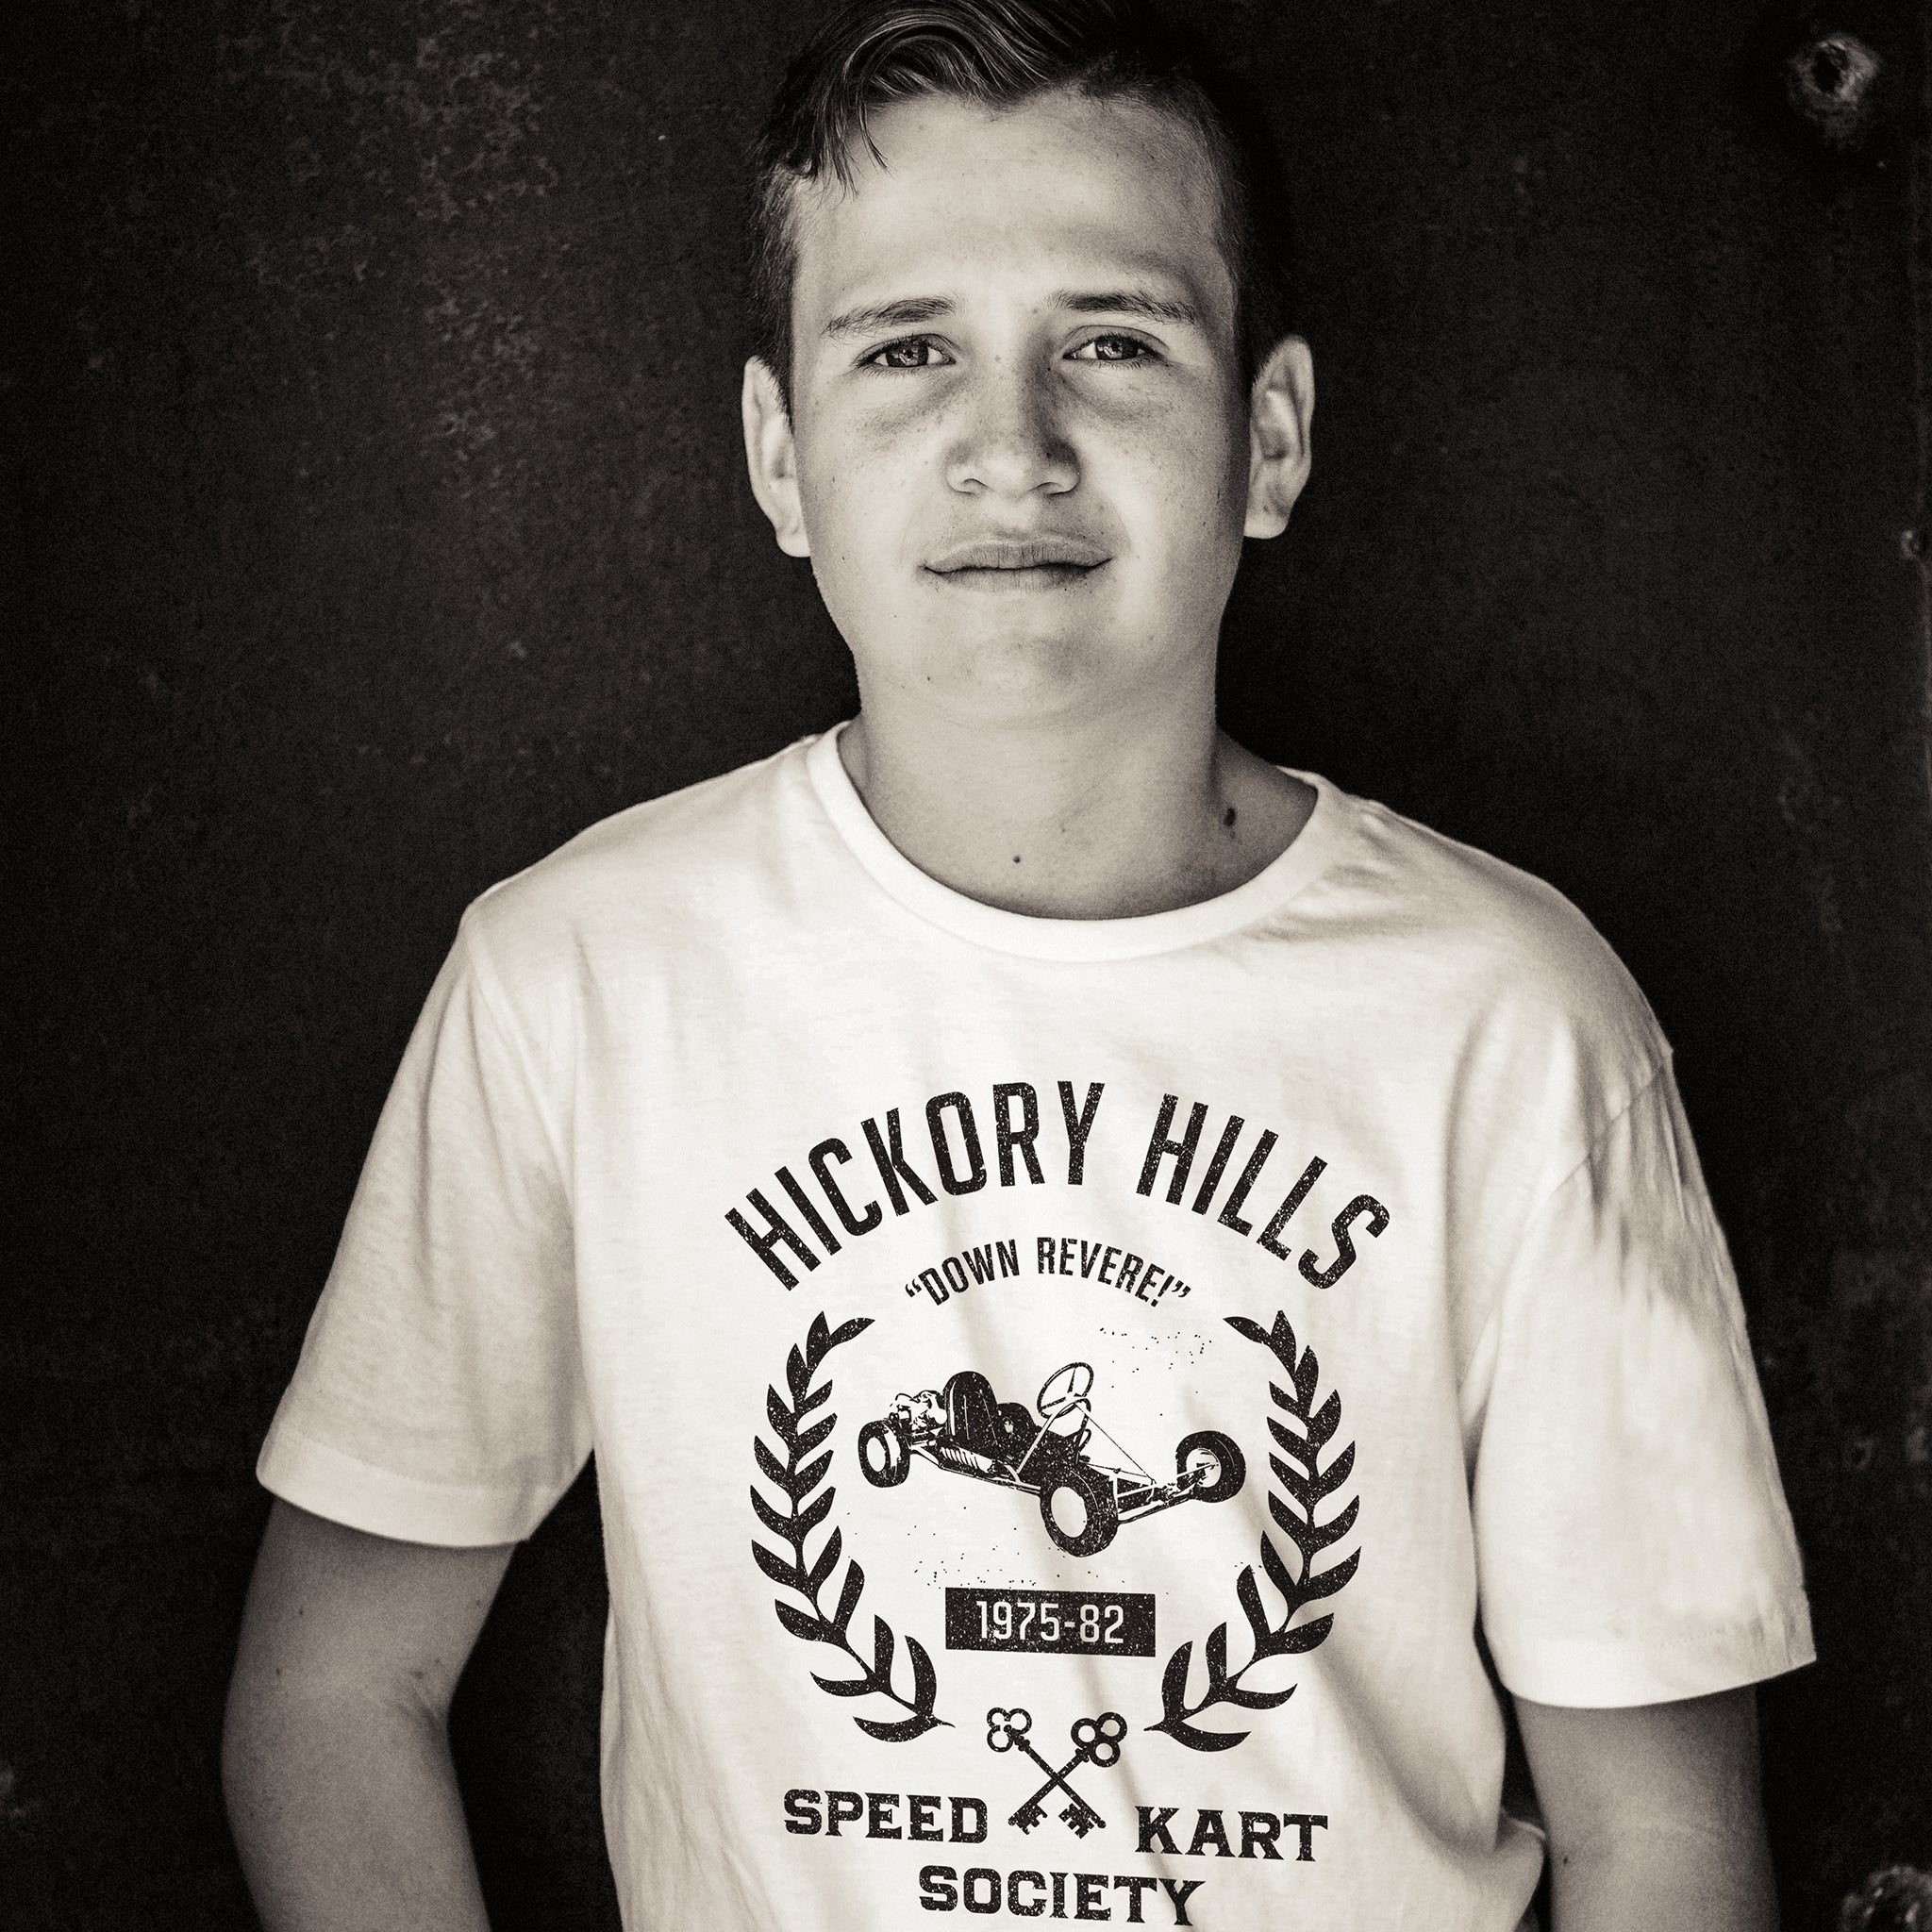 A young boy wears a 'vintage fiction,' retro t-shirt picturing a go-kart, promoting a small town racing league from 1975-1982 in Hockessin, Delaware. Inspired by the films of Wes Anderson. By fashion brand VNTG., from wolfsaint.net